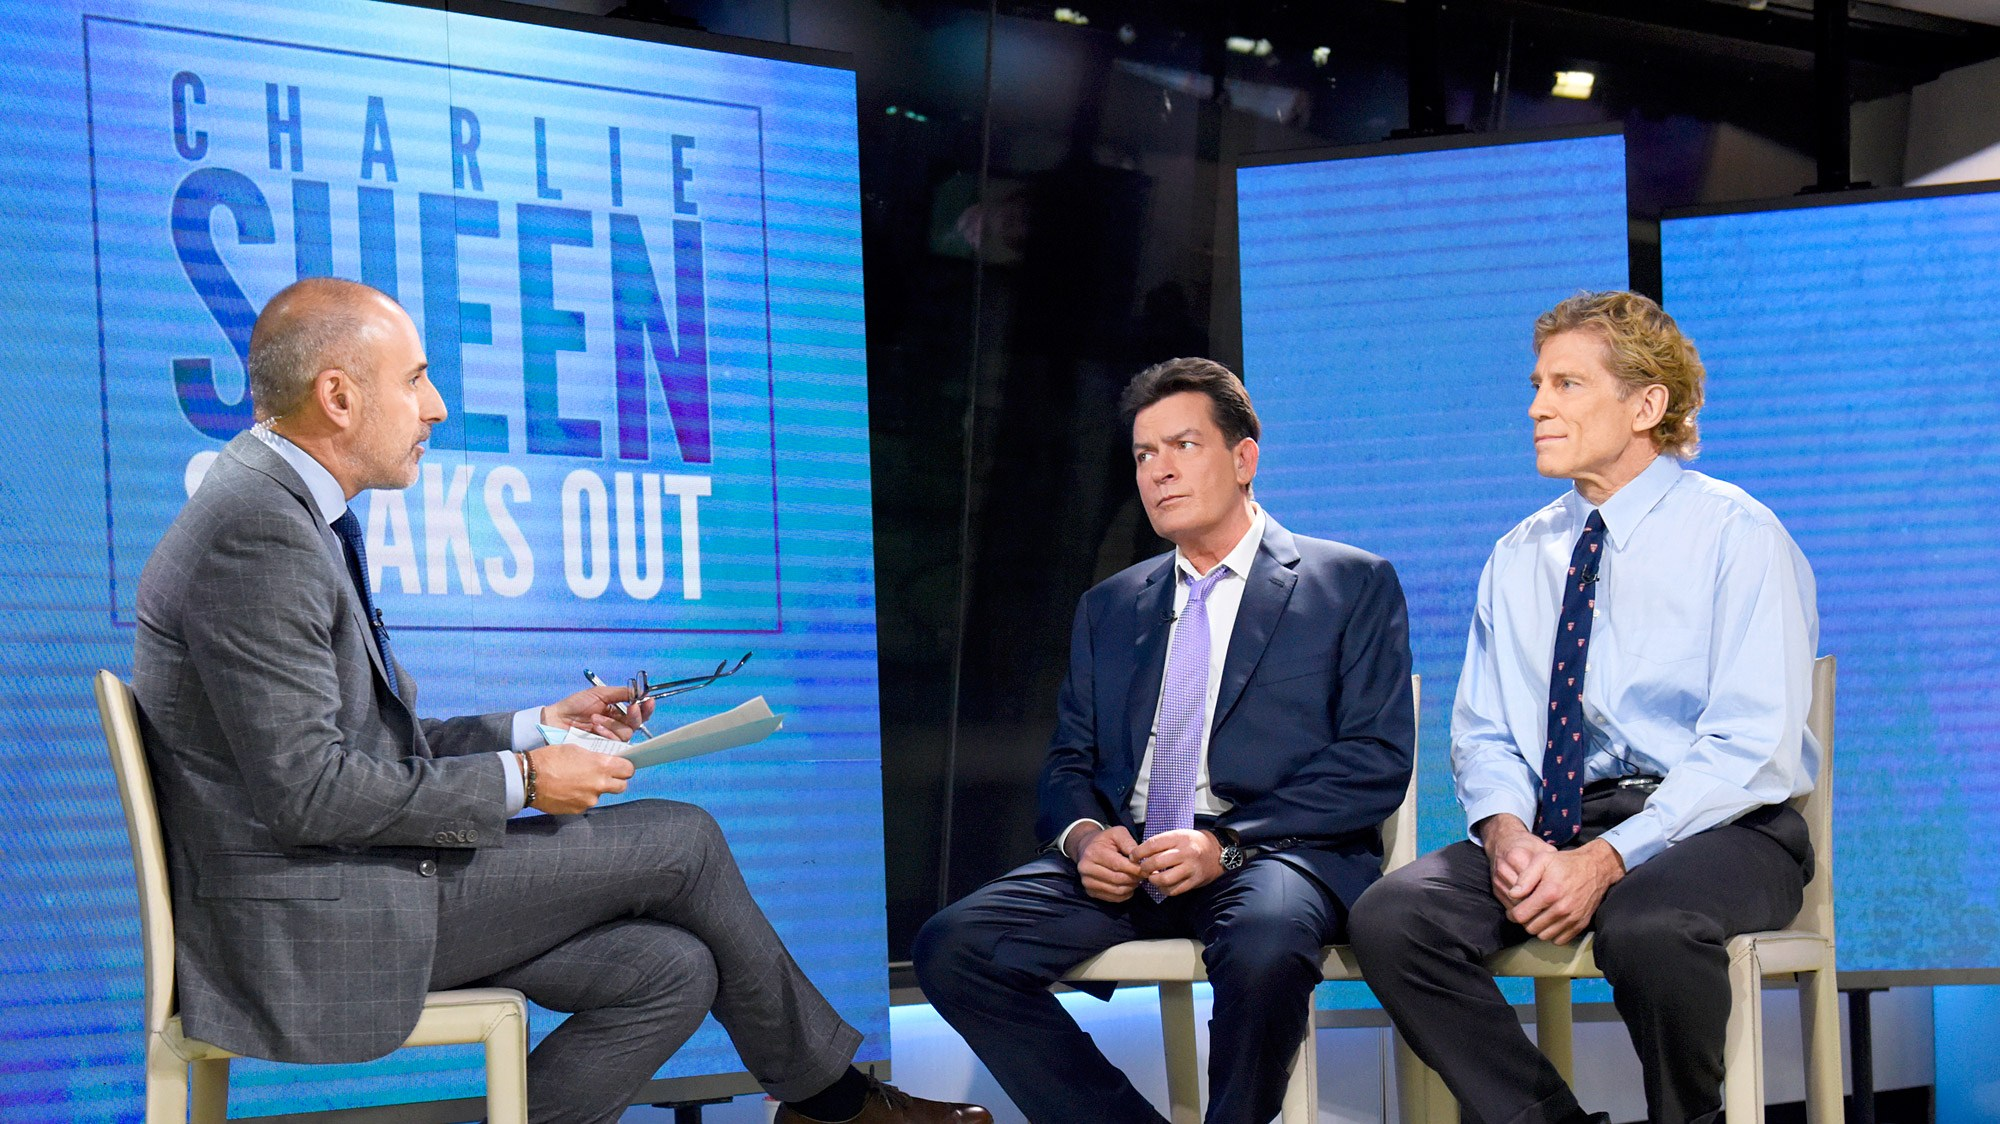 Matt Lauer, Charlie Sheen and Dr. Robert Huizenga